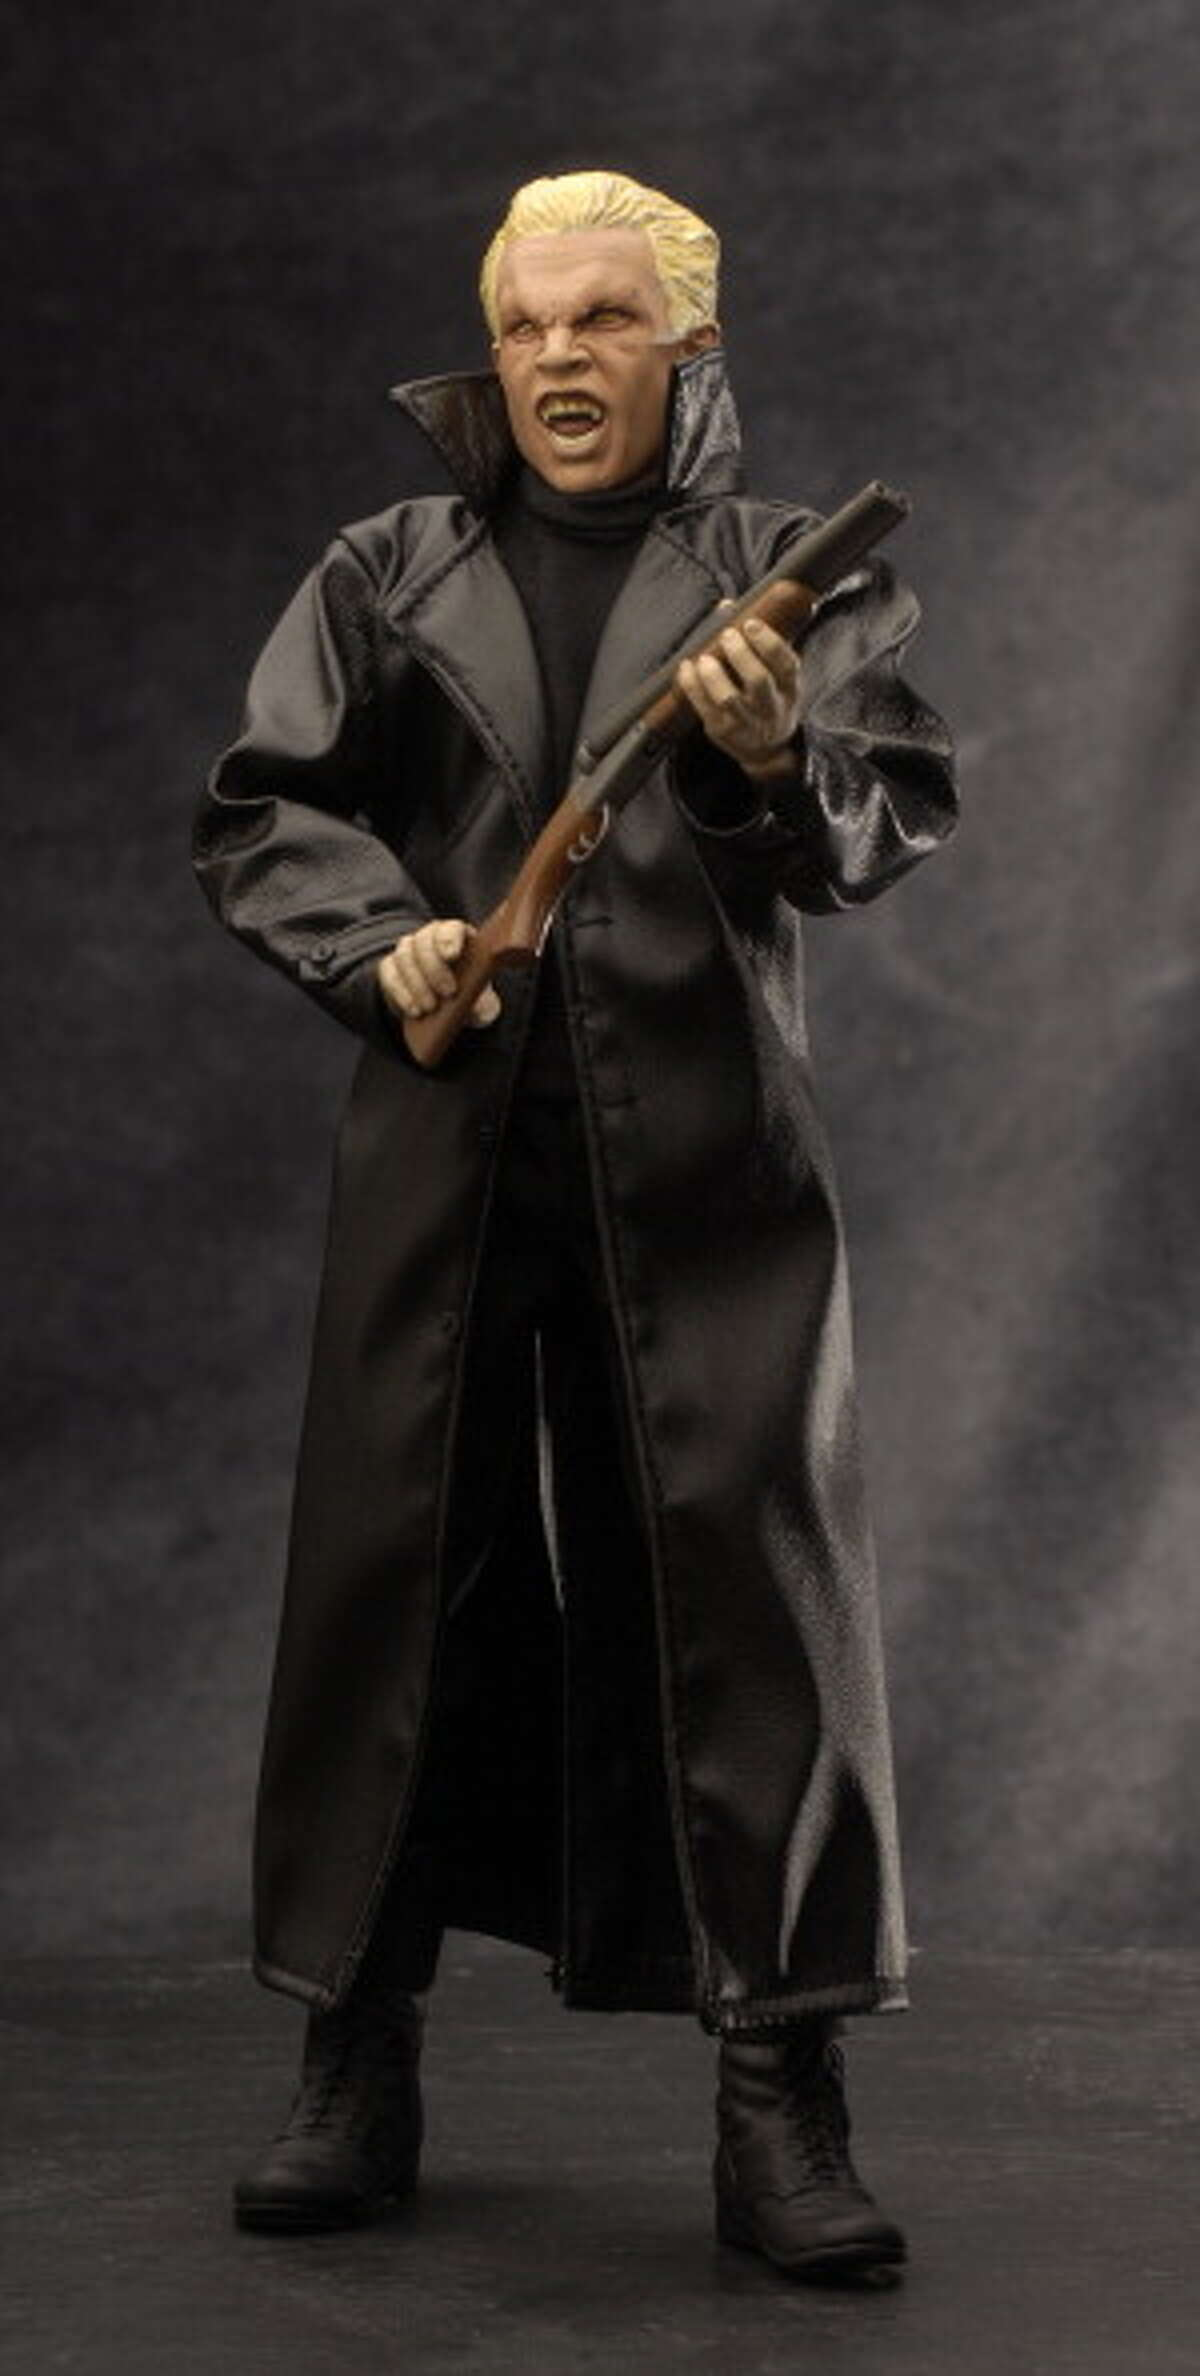 Ultra realistic action figures, such as Spike from Buffy the Vampire Slayer are very popular collector items.